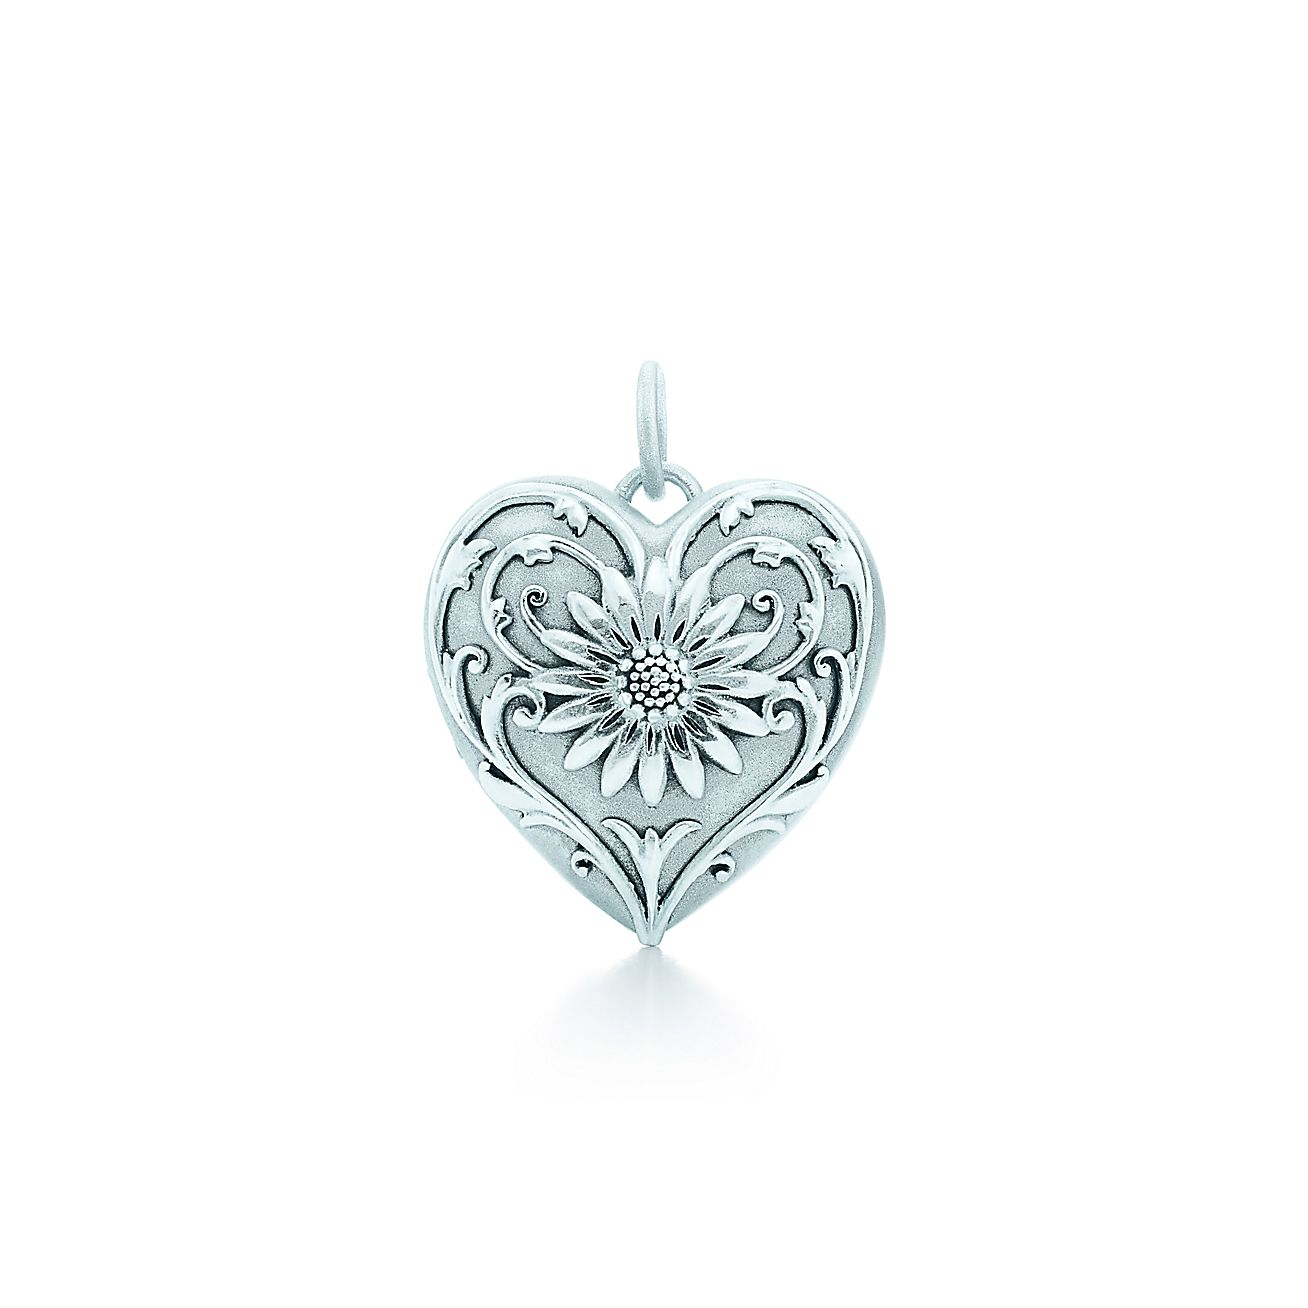 Ziegfeld Collection Daisy Locket In Sterling Silver